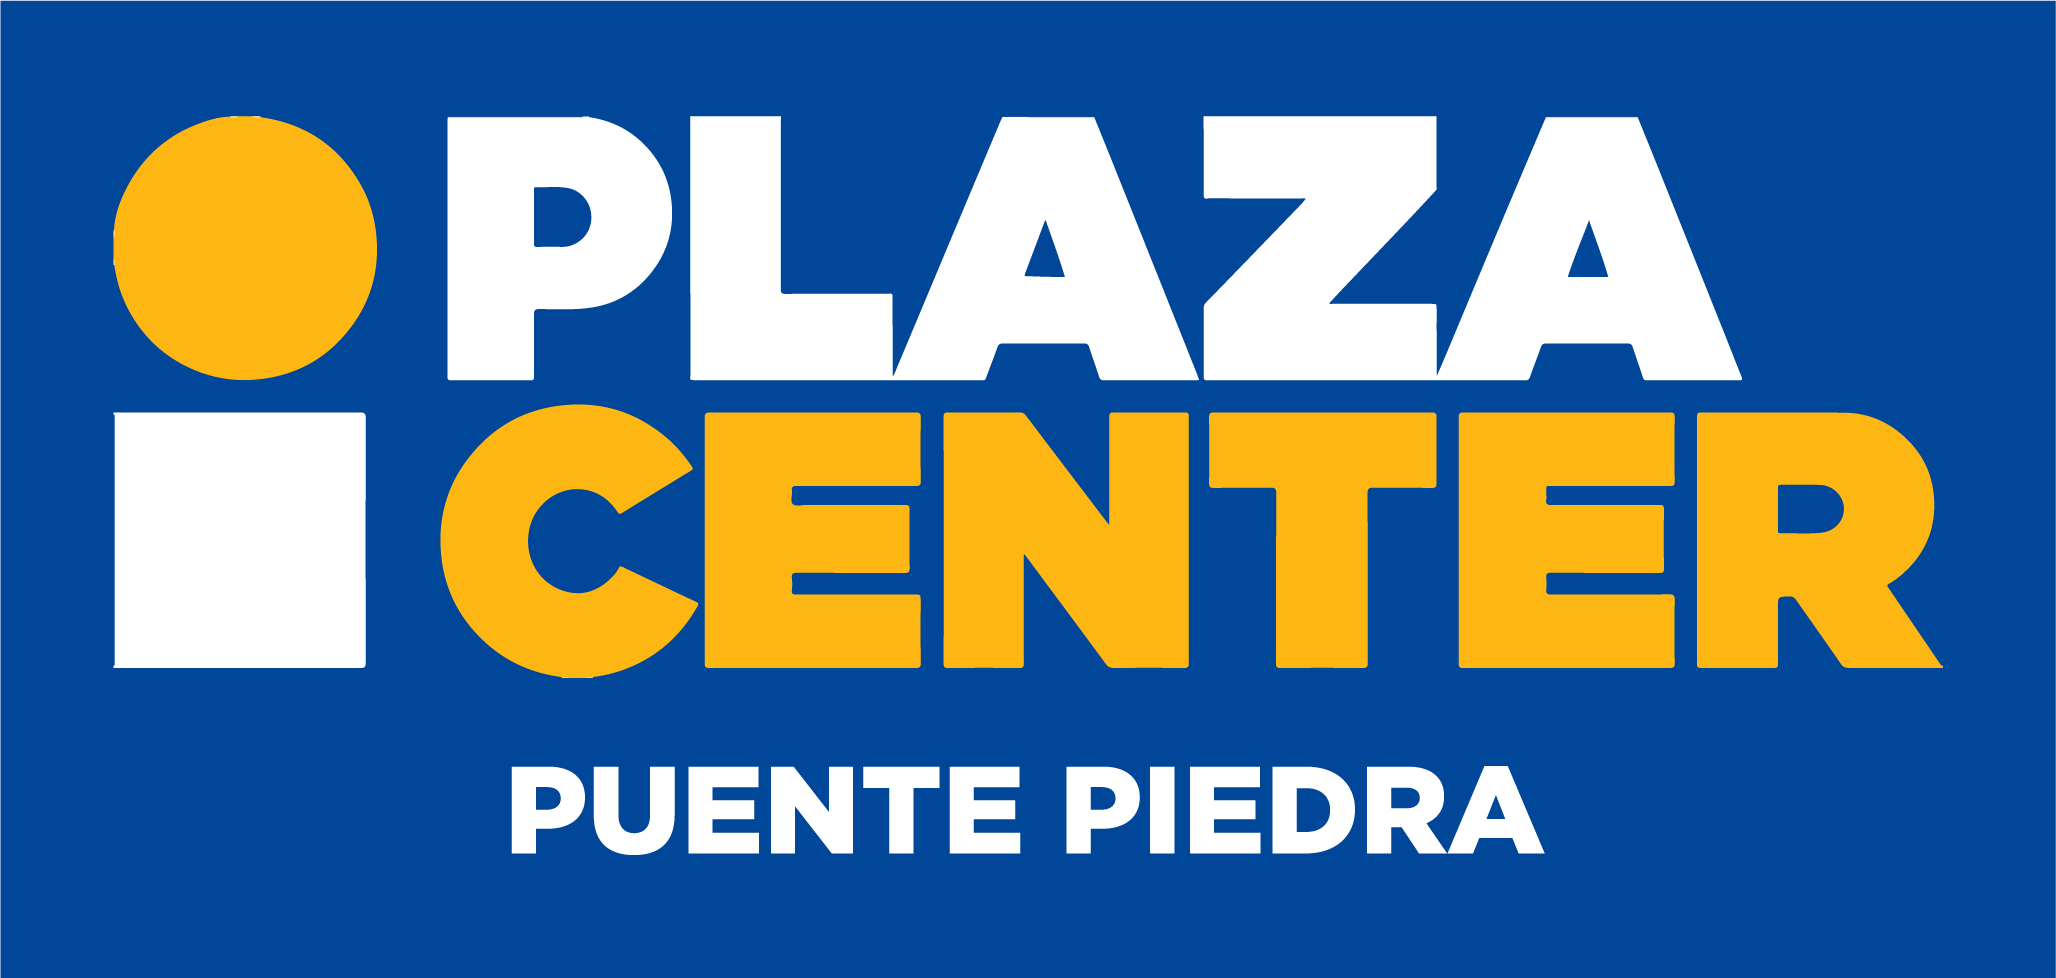 Plaza Center Puente Piedra